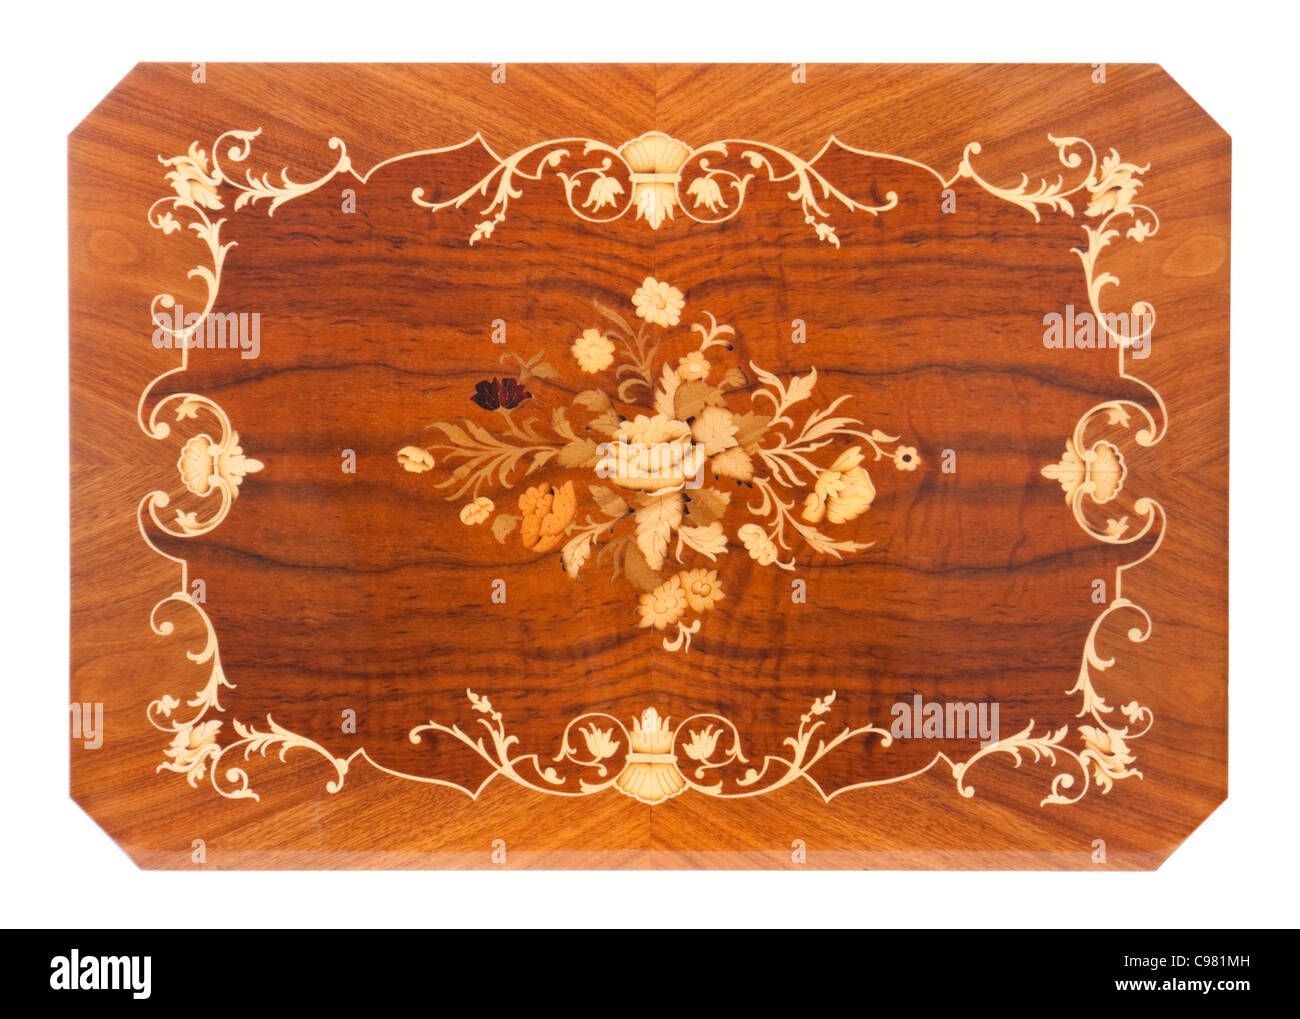 Italian coffee table top with inlaid design - Stock Image